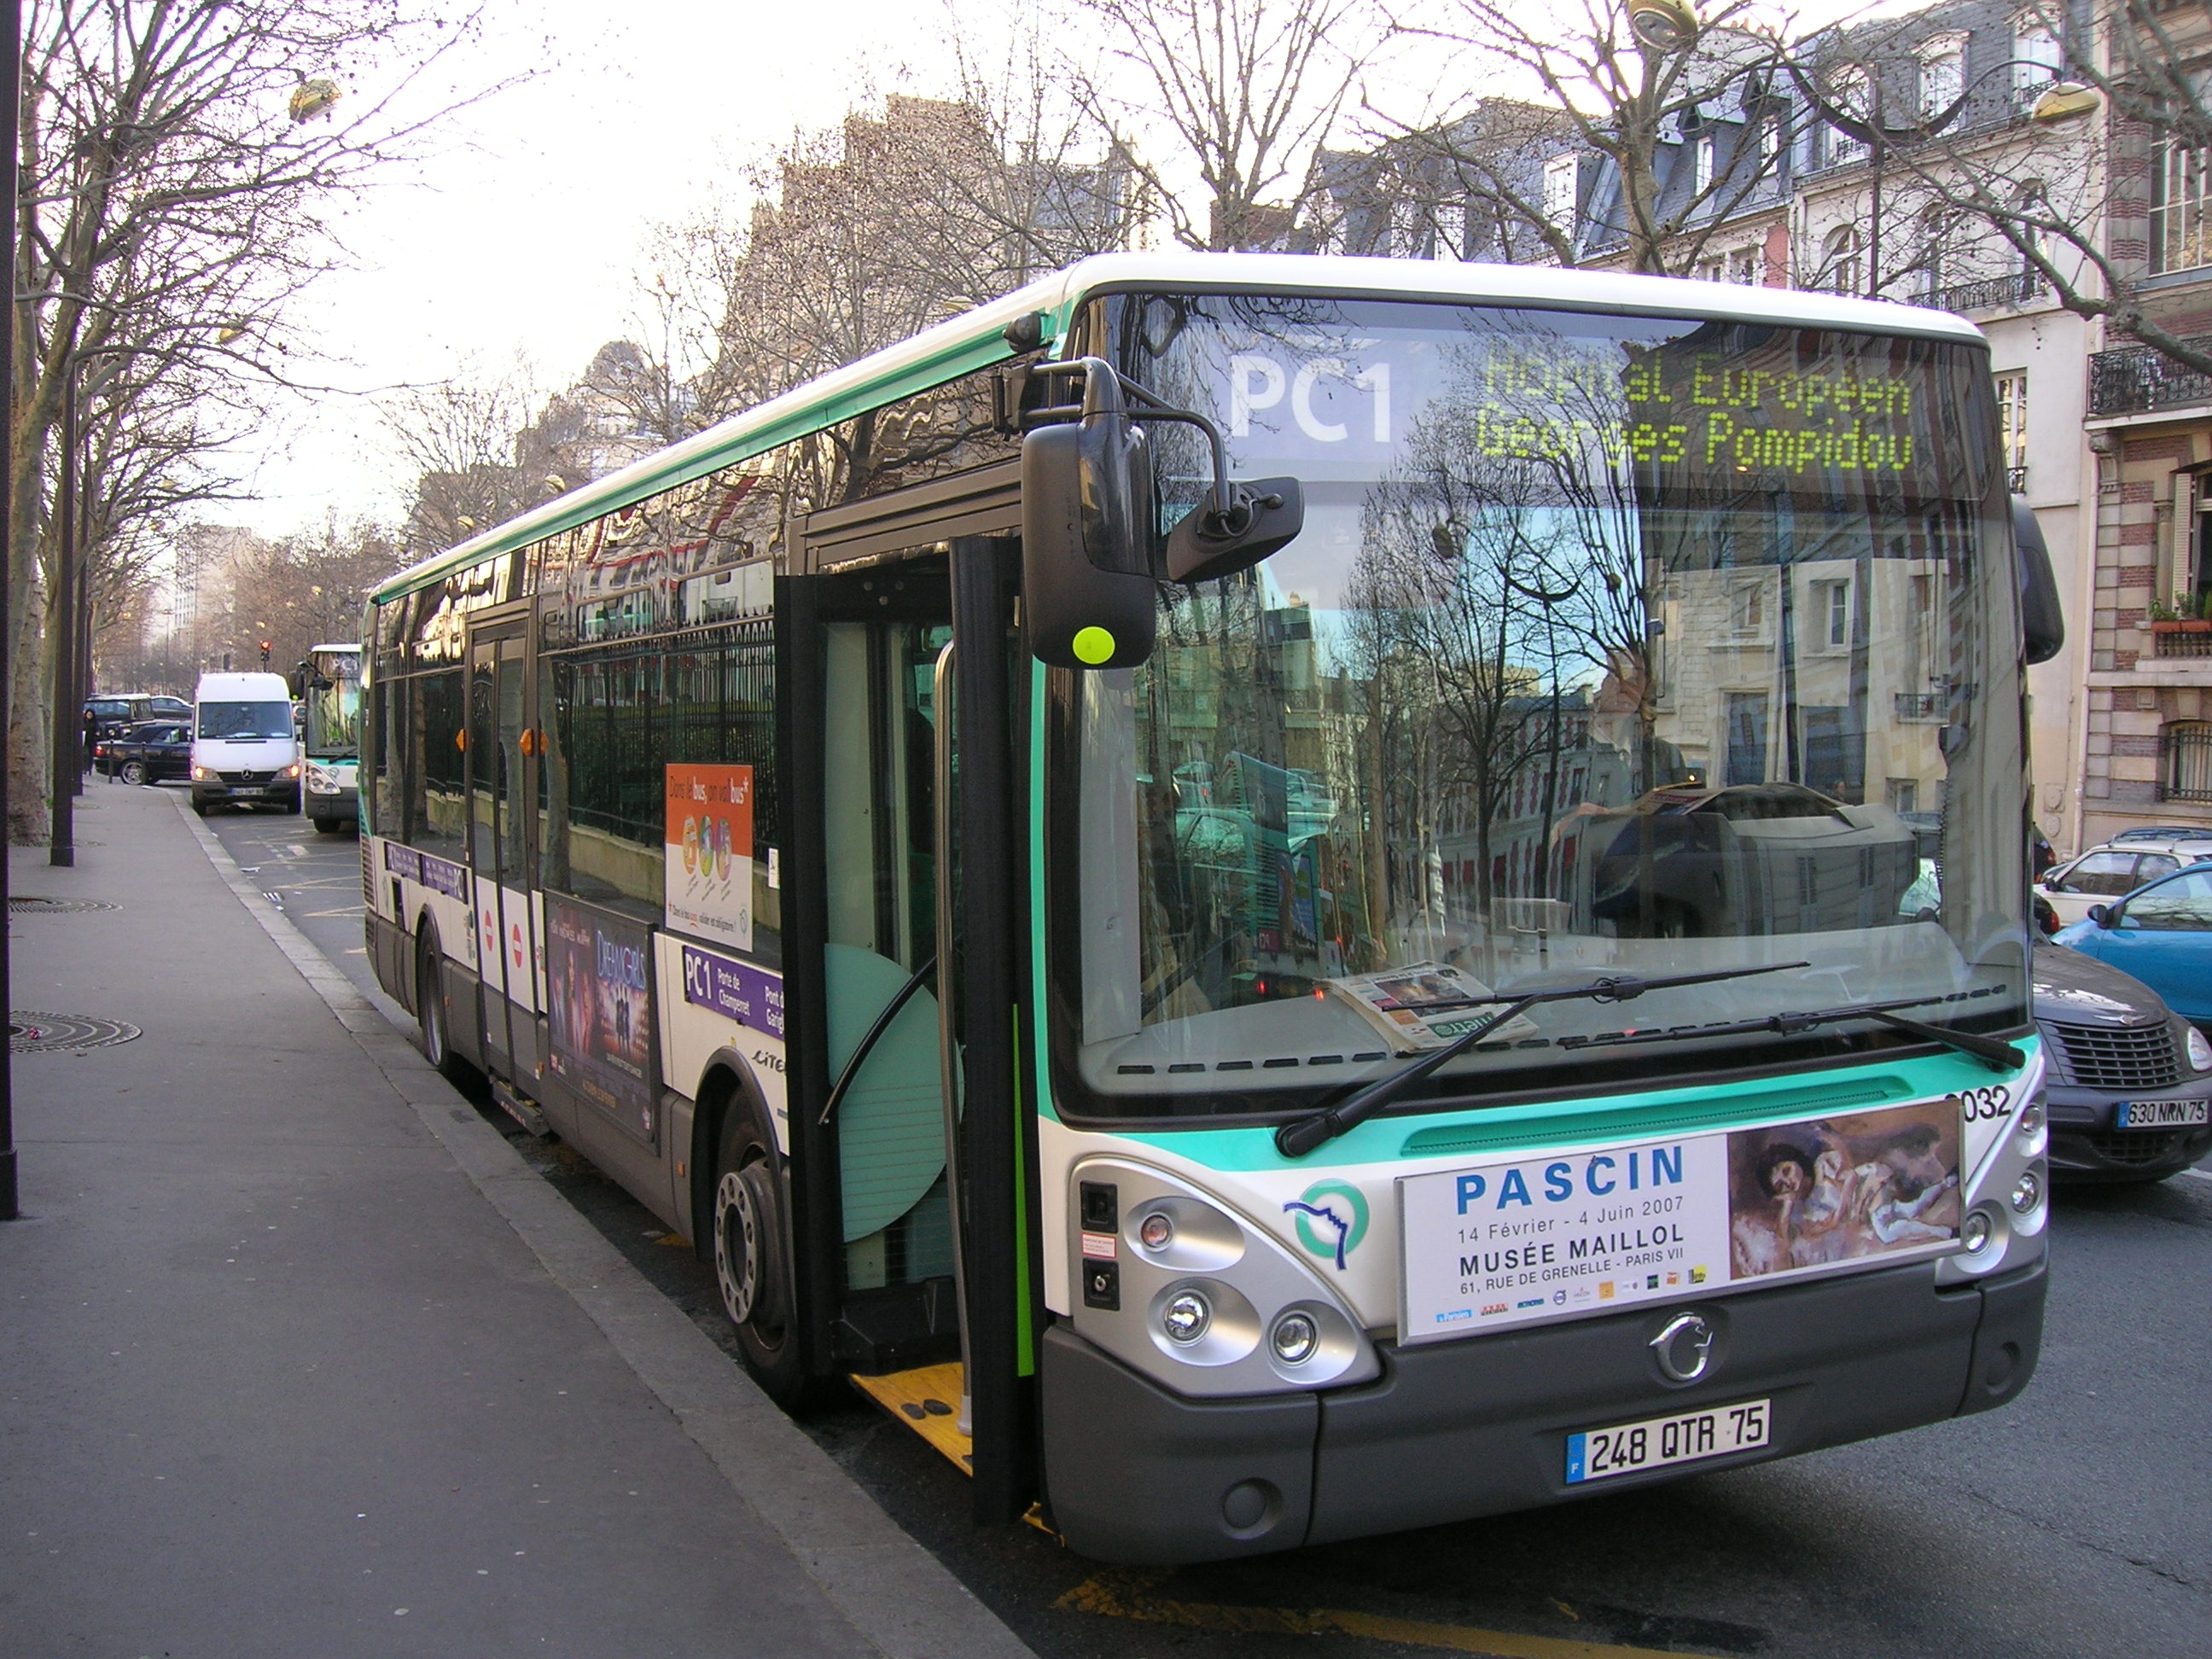 fichier ratp pc1 porte de champerret jpg wikip dia. Black Bedroom Furniture Sets. Home Design Ideas